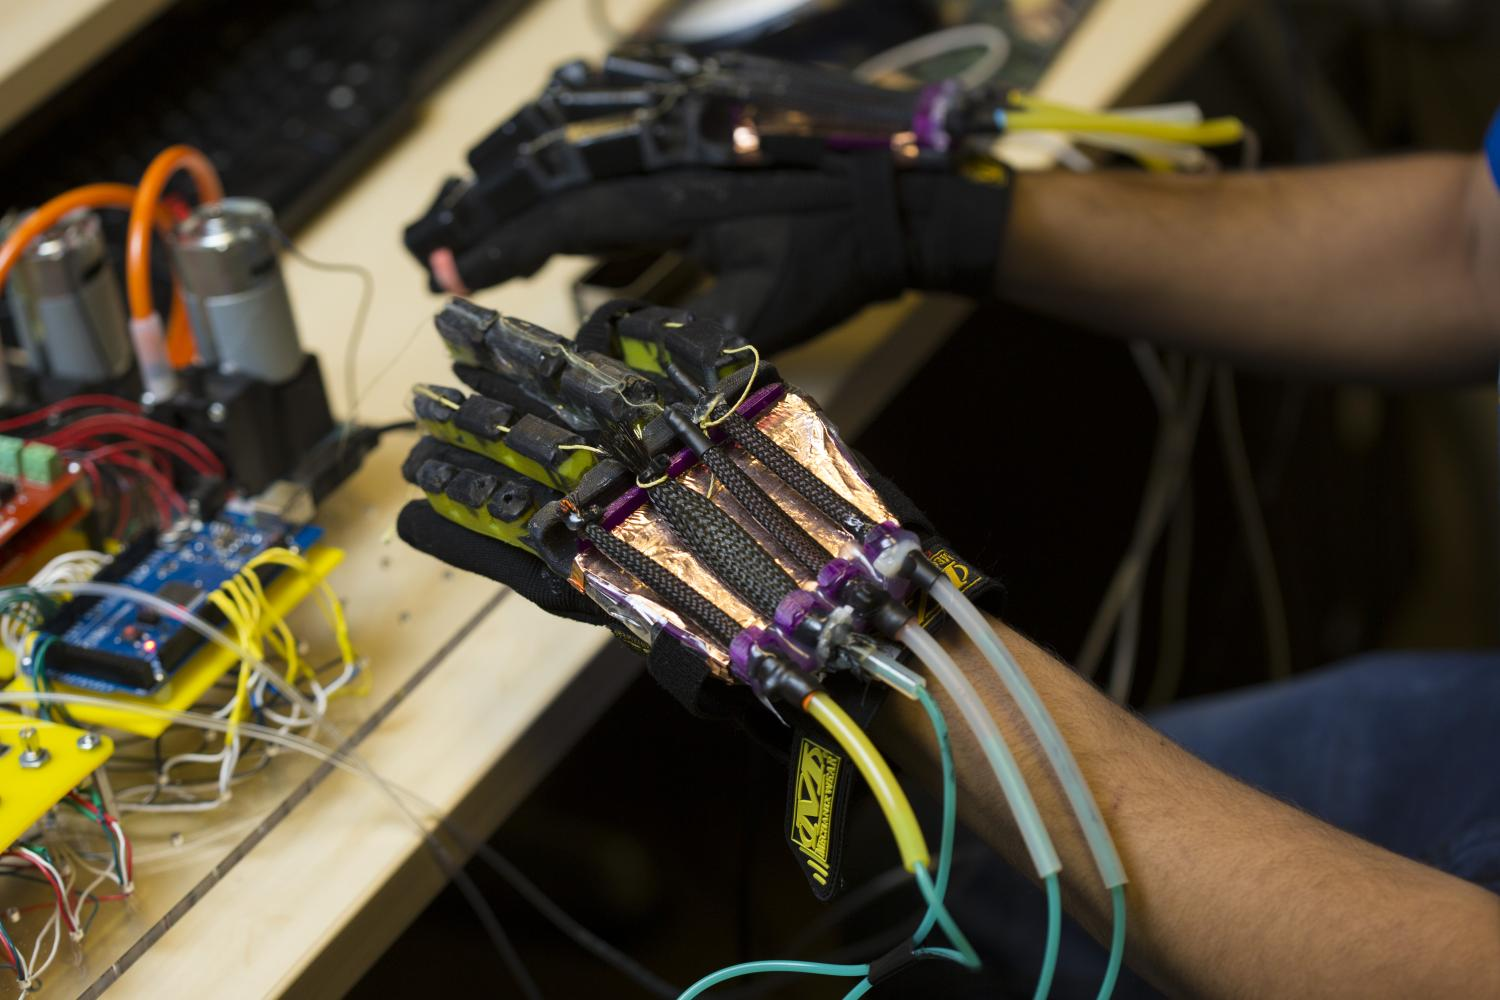 100 Solutions Robotics Squishy Circuits Standard Kit Robotshop Engineers At Uc San Diego Are Using Soft Technology To Make Light Flexible Gloves That Allow Users Feel Tactile Feedback When They Interact